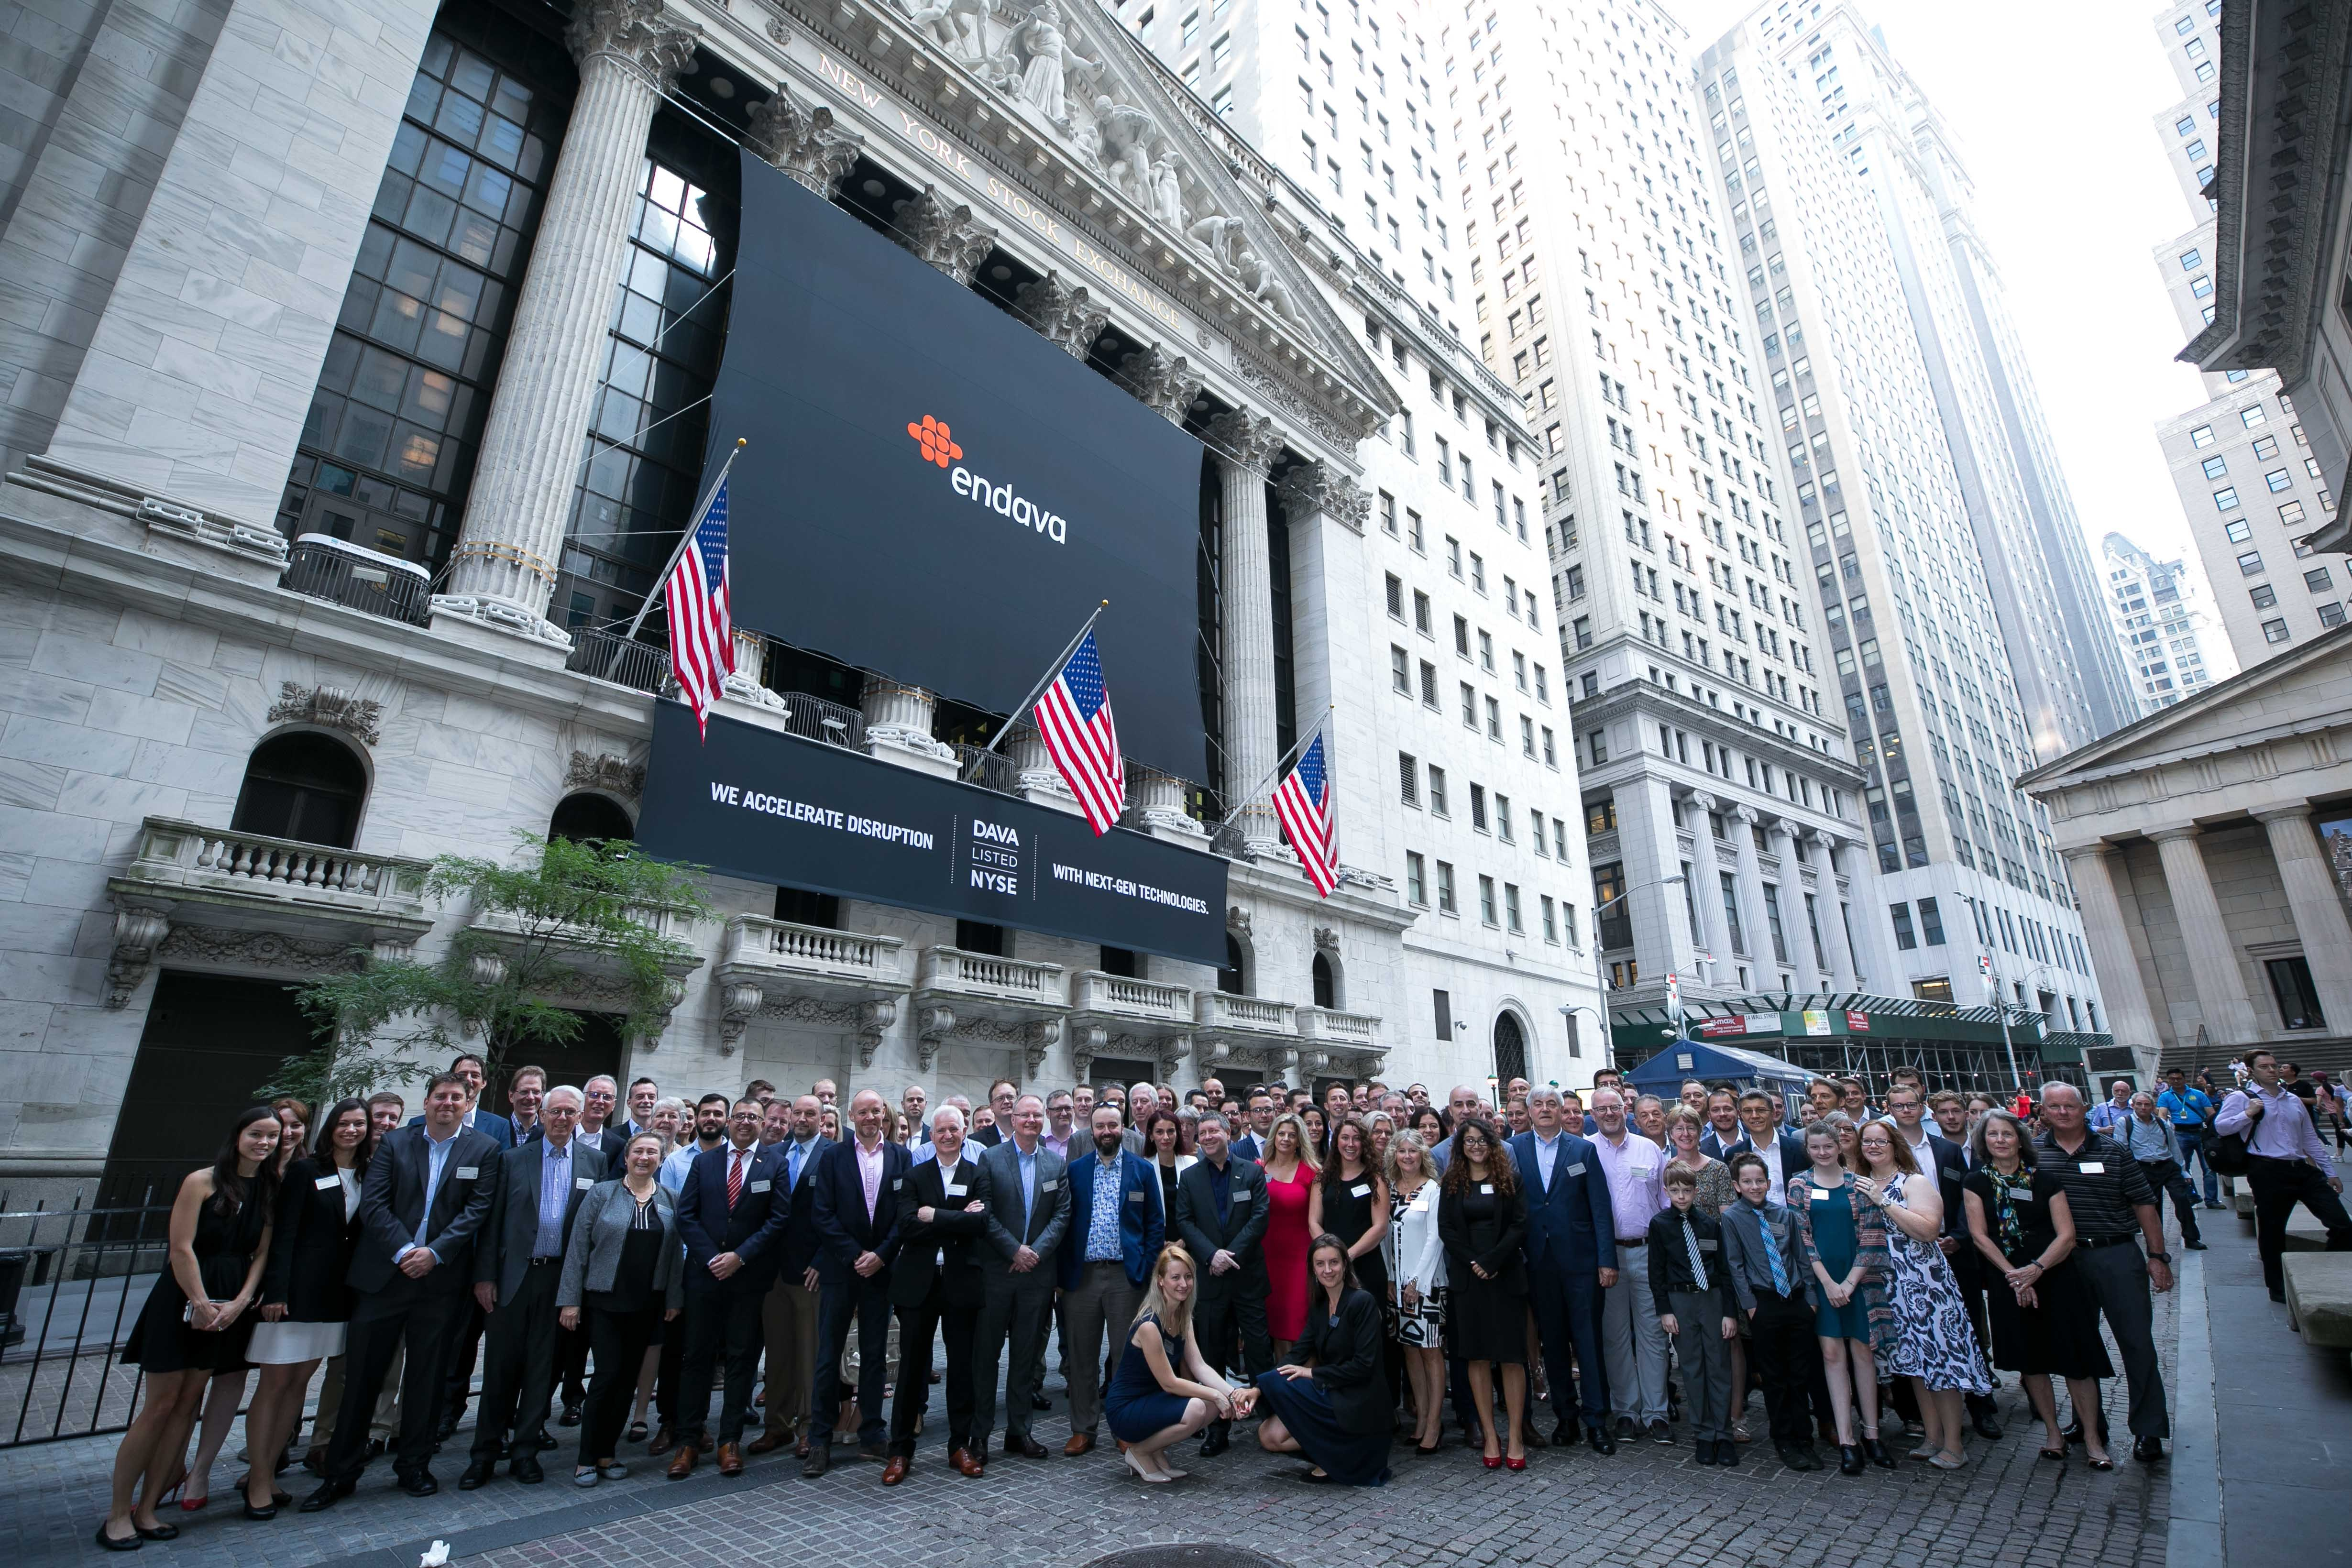 Endava Marks Ipo And First Day Of Trading On New York Stock Exchange